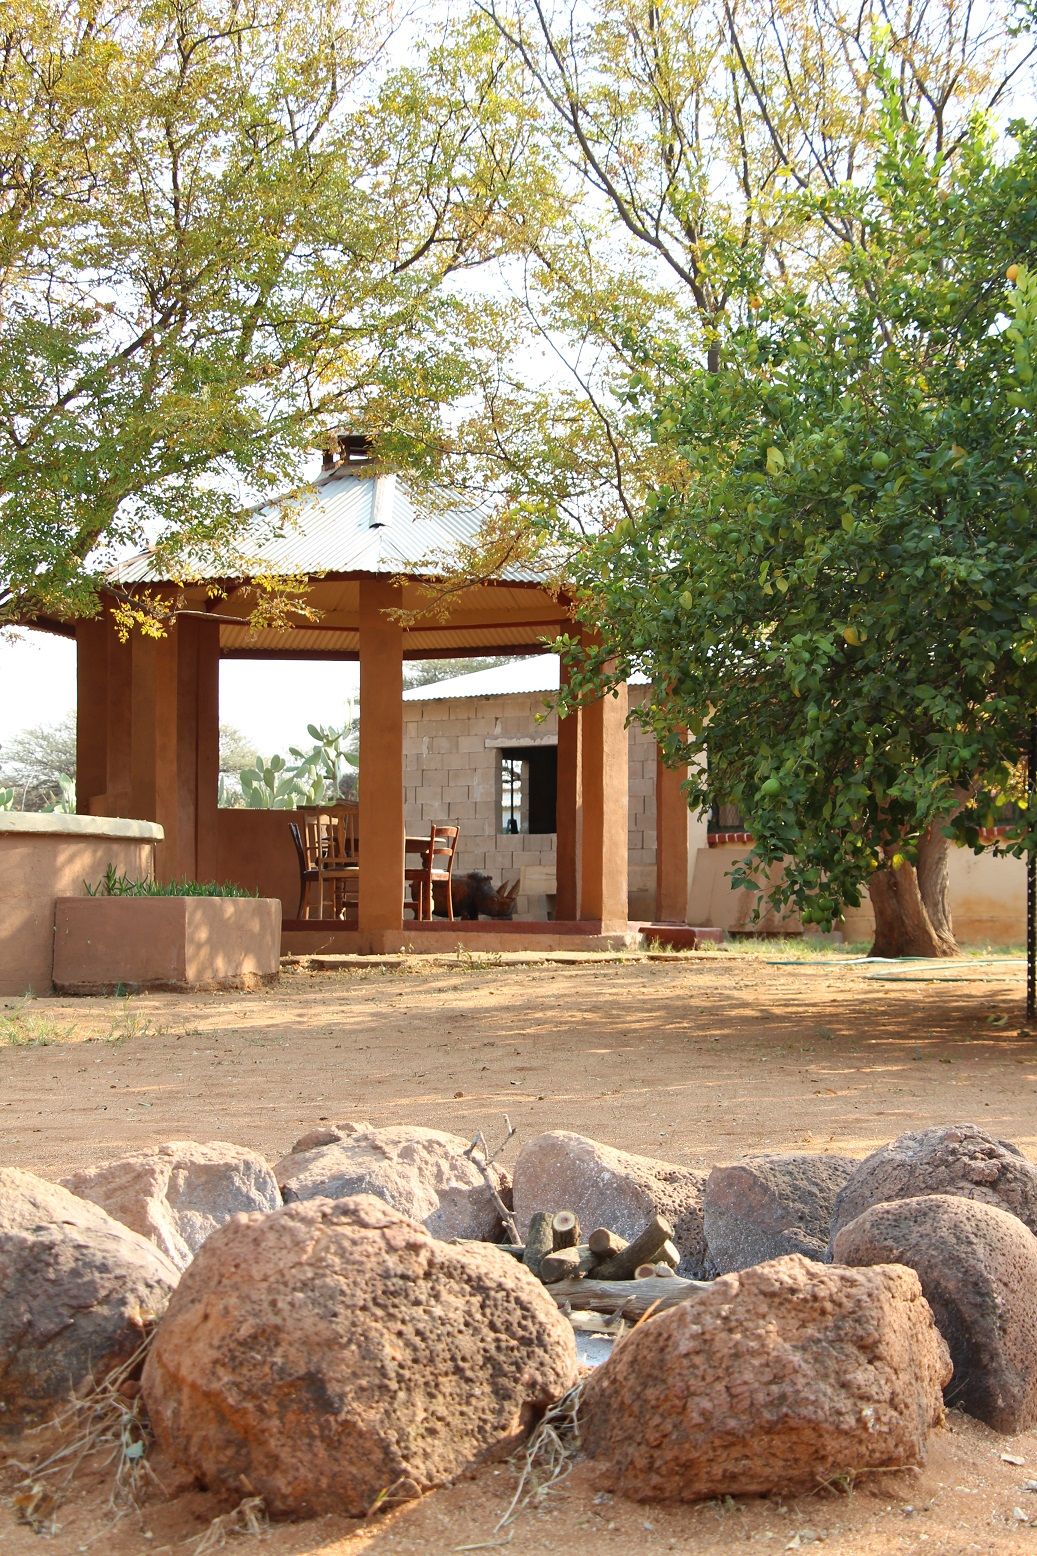 garten mit pavillon farm hazeldene namibiafarm hazeldene namibia. Black Bedroom Furniture Sets. Home Design Ideas